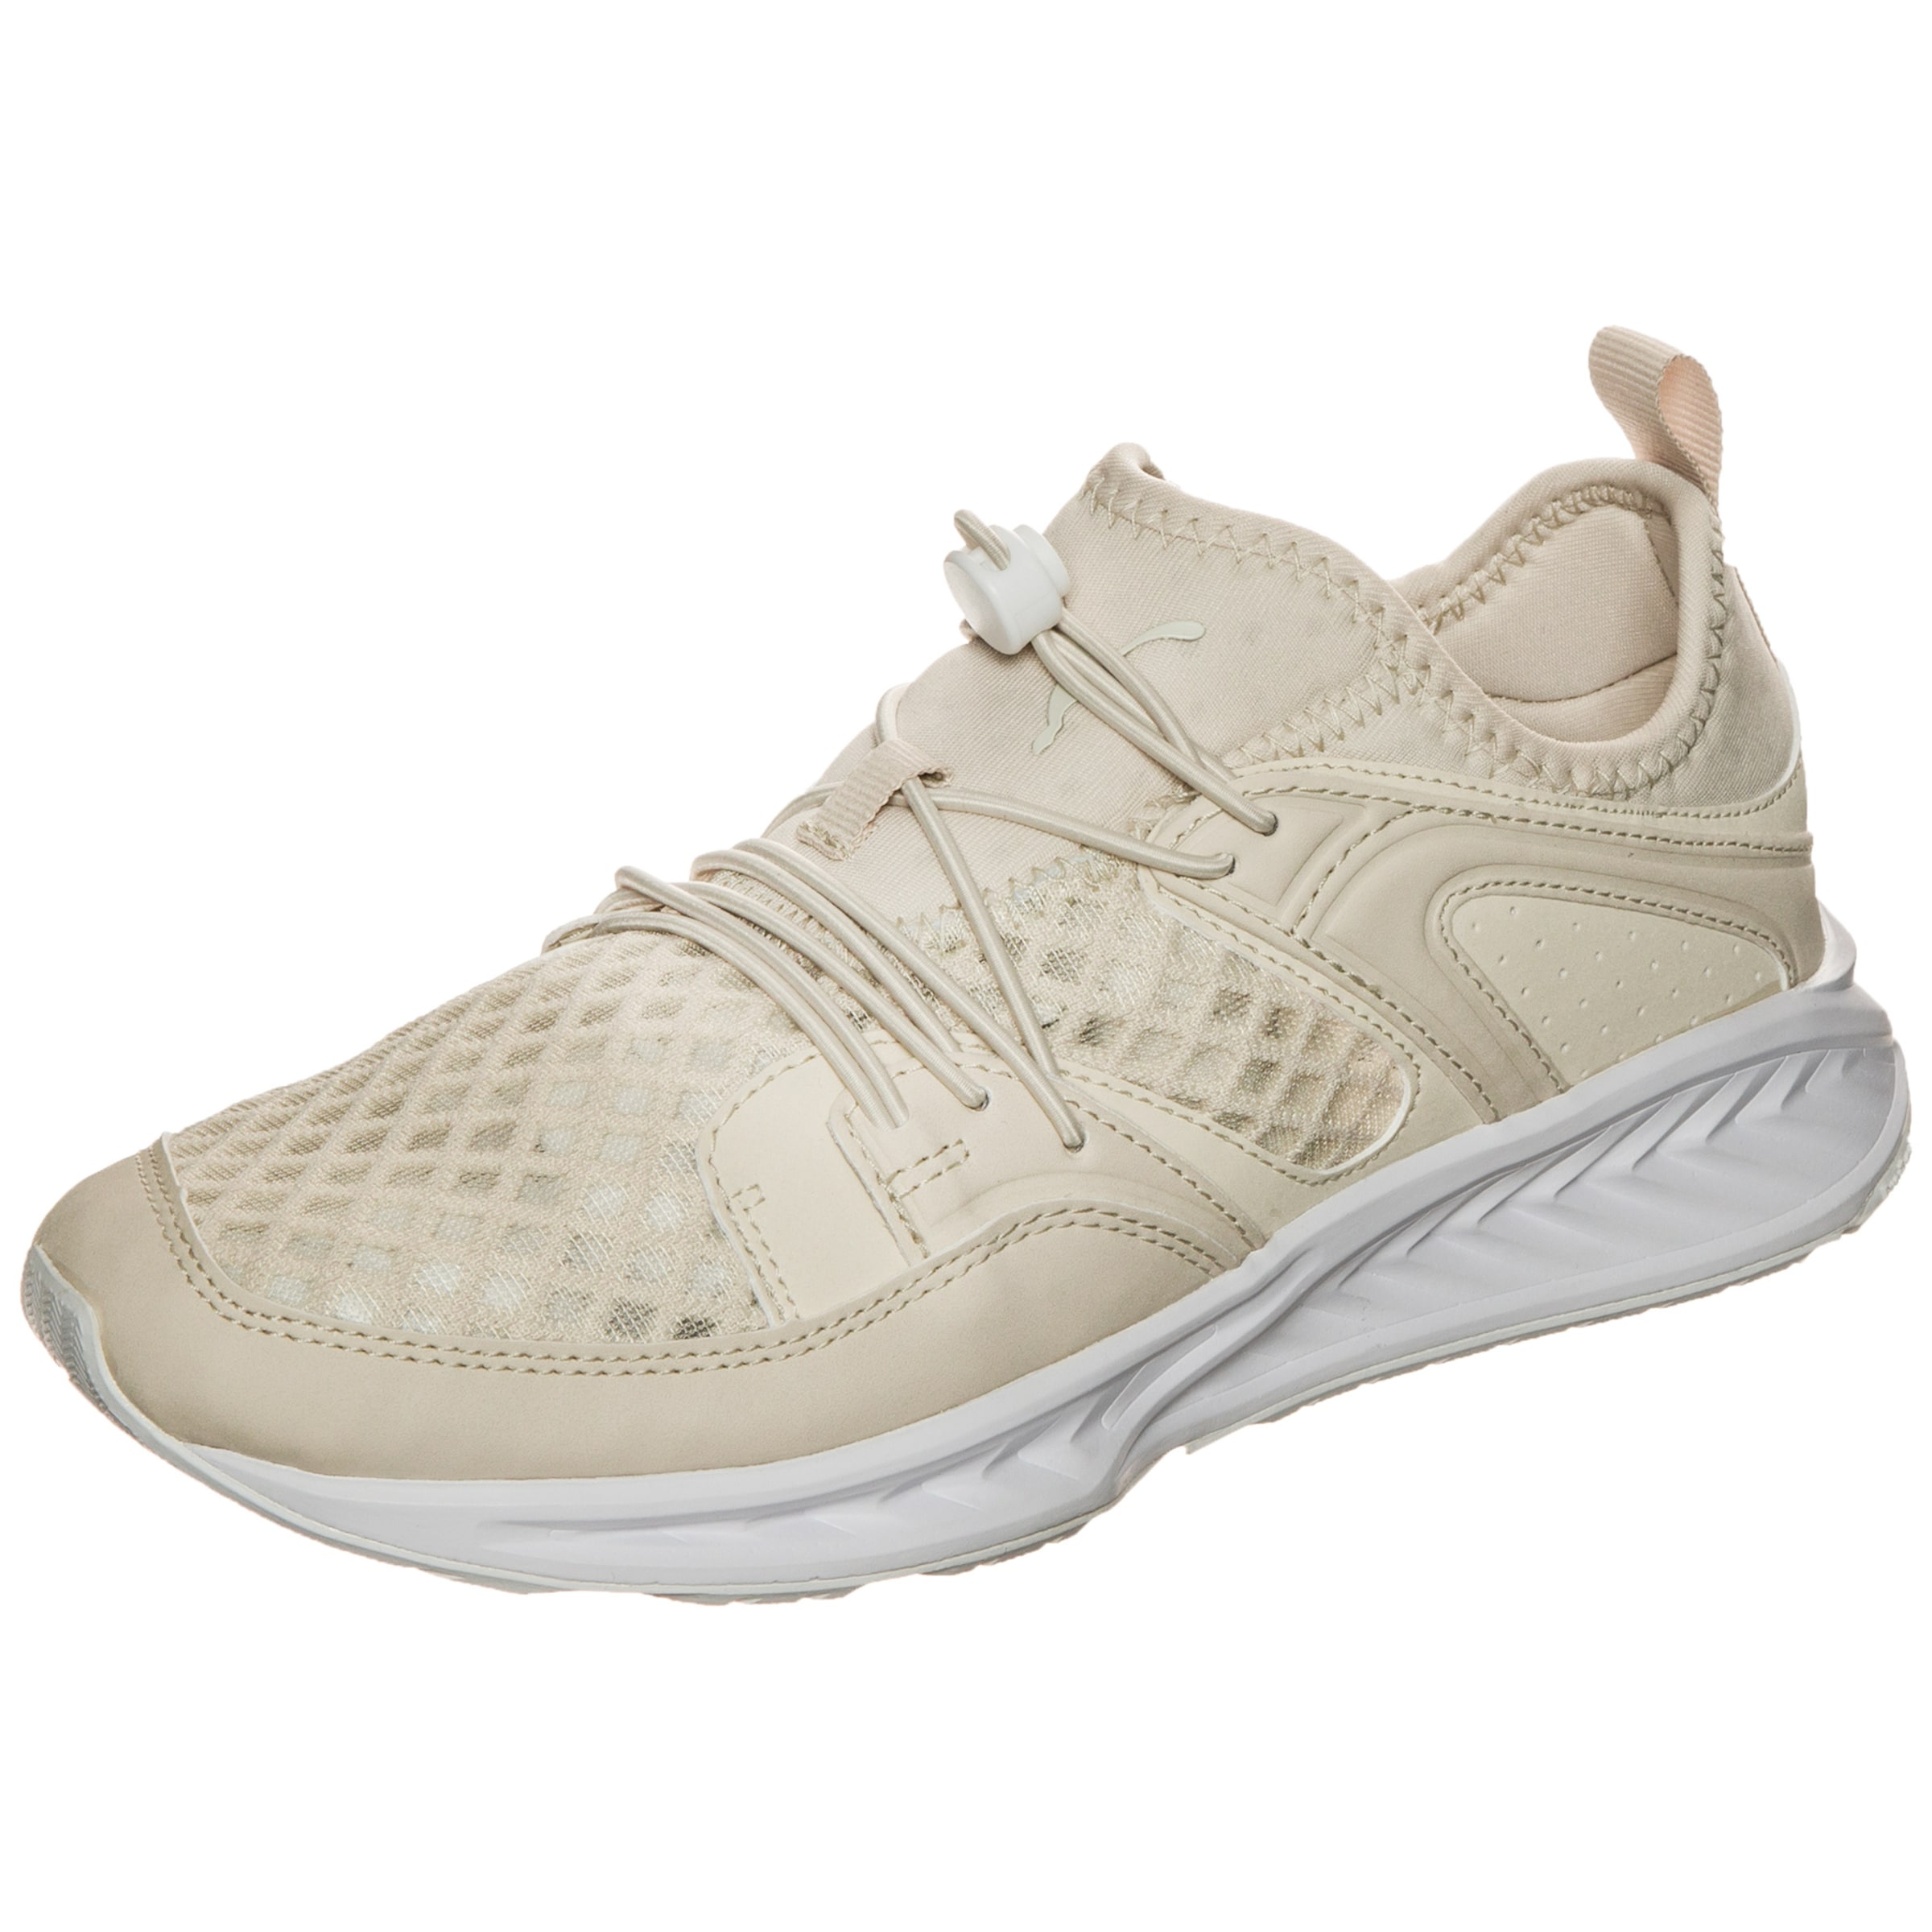 In Sneaker Puma Beige Breathe' Plus 'blaze Ignite 35ARLqc4jS